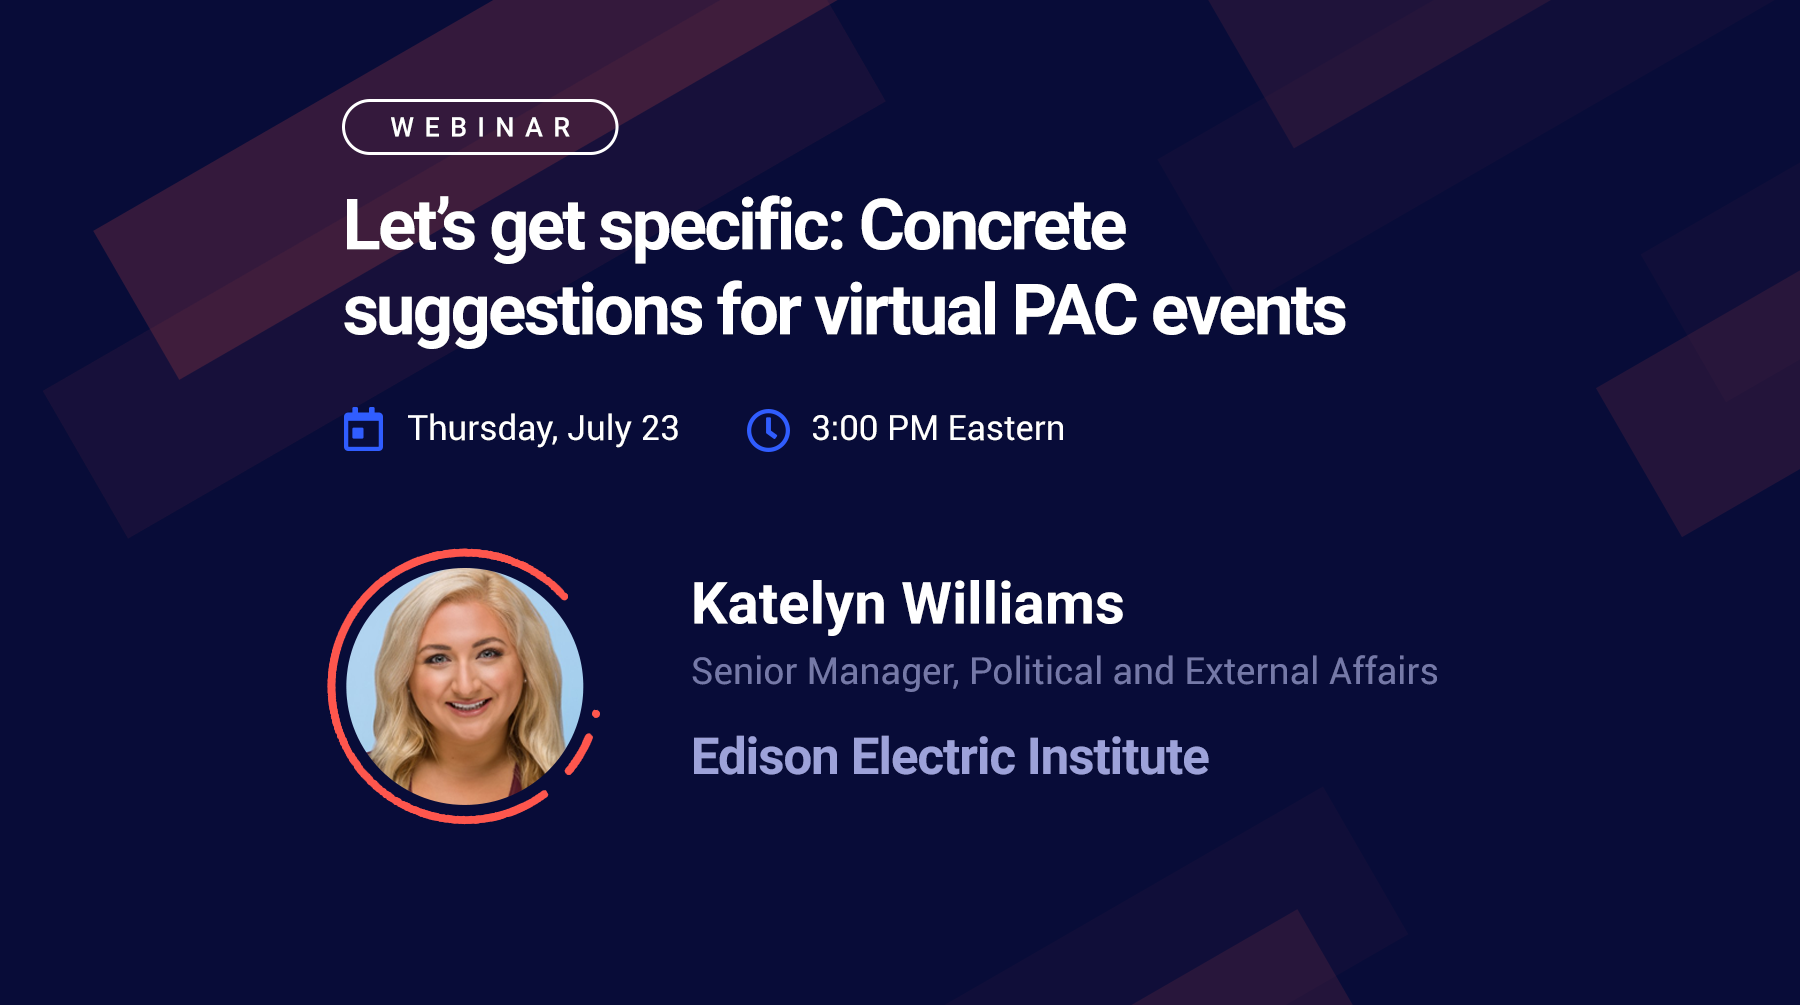 Webinar - Let's get specific: Concrete suggestions for virtual PAC events